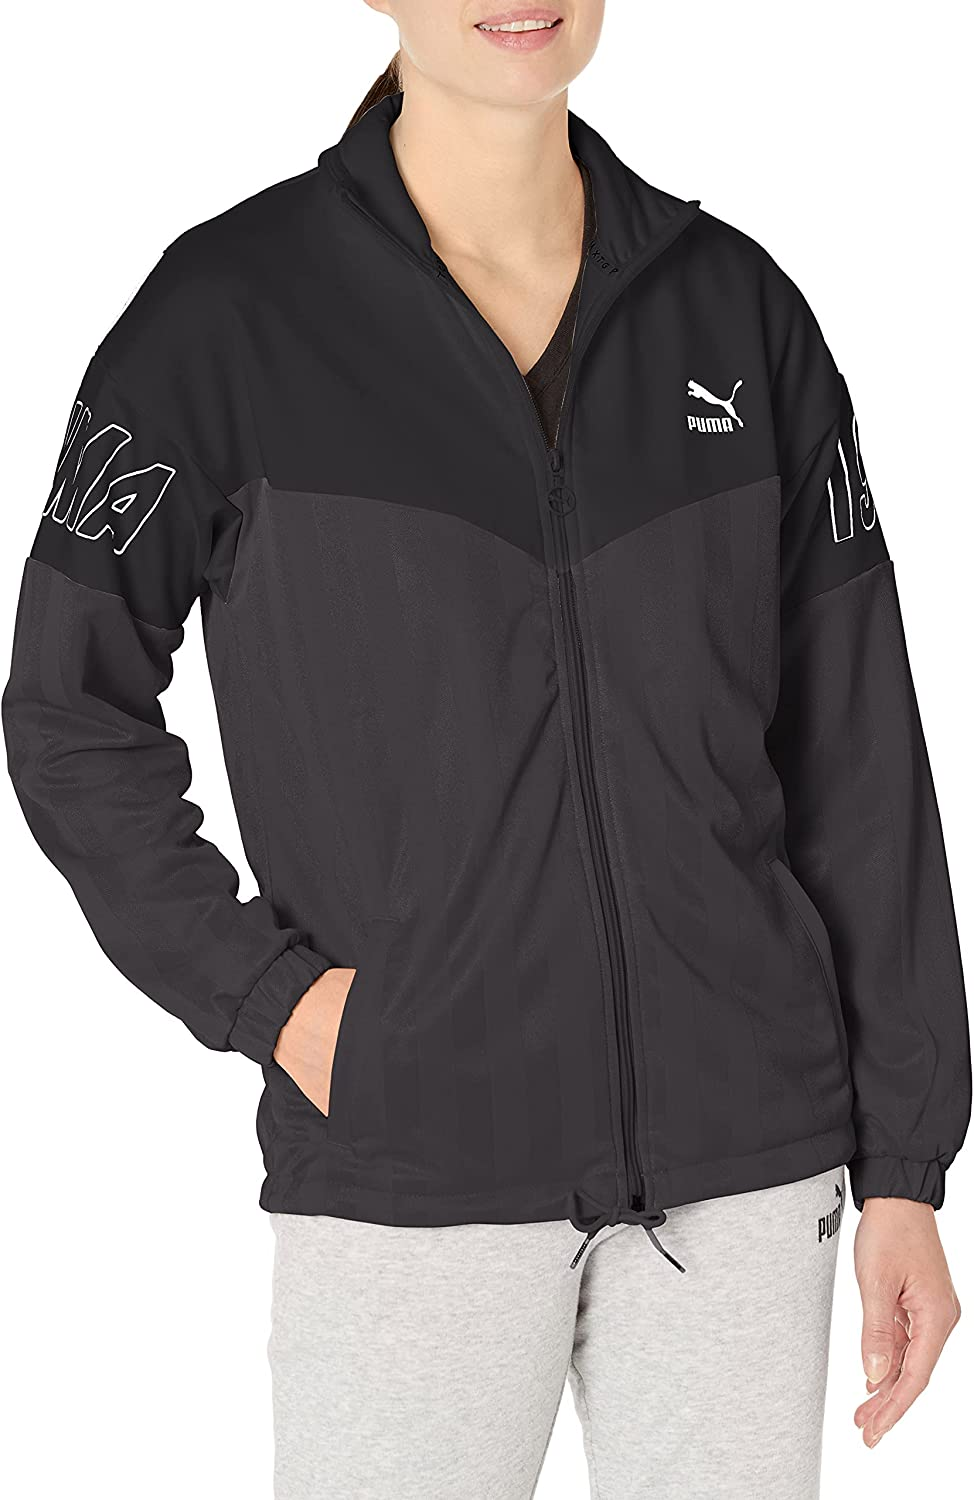 online shopping PUMA Free shipping anywhere in the nation Women's Luxtg Jacket Jacquard